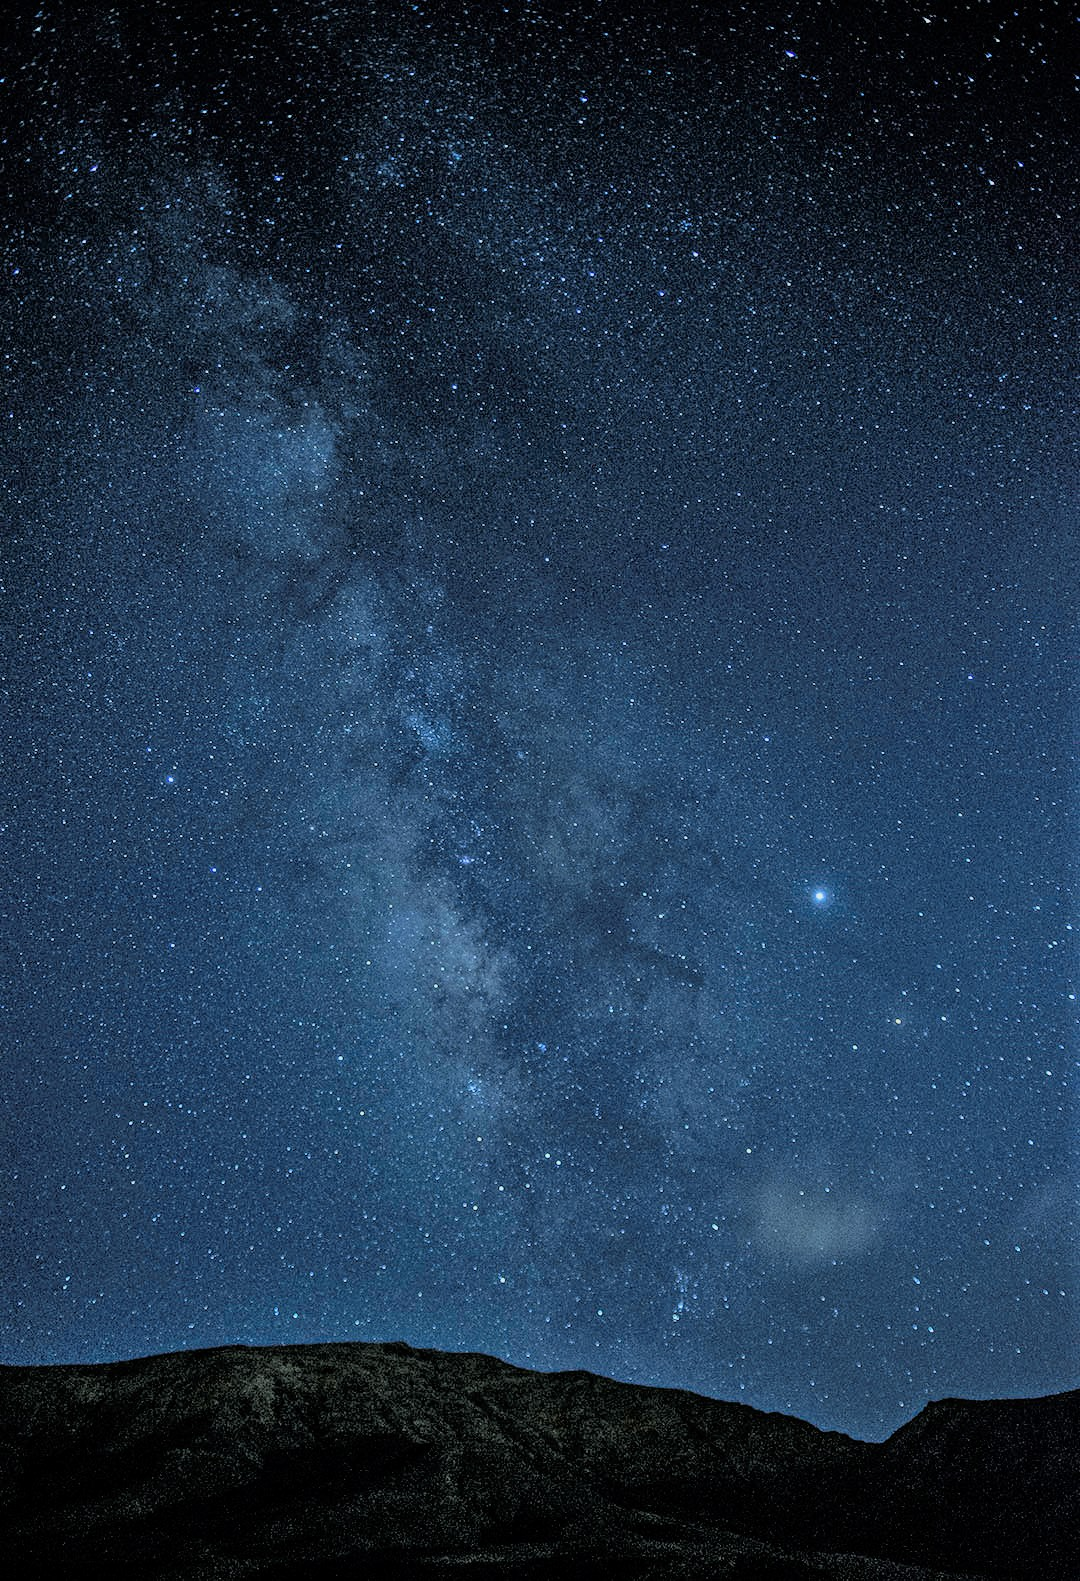 Milky Way Wonder